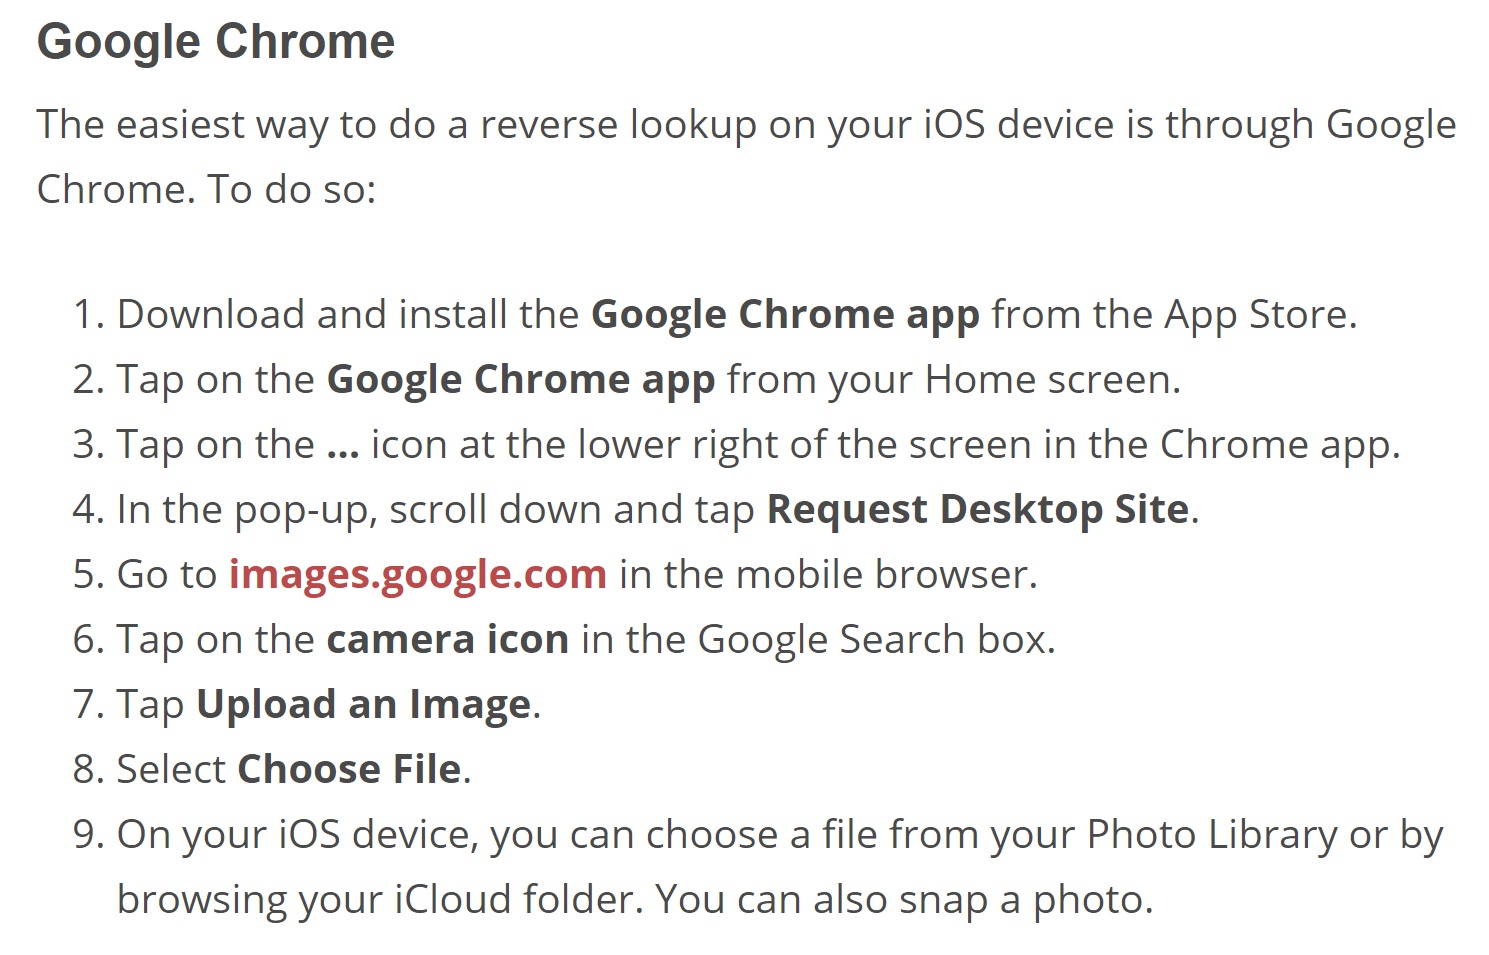 Instructions for Google Chrome Reverse Image Search